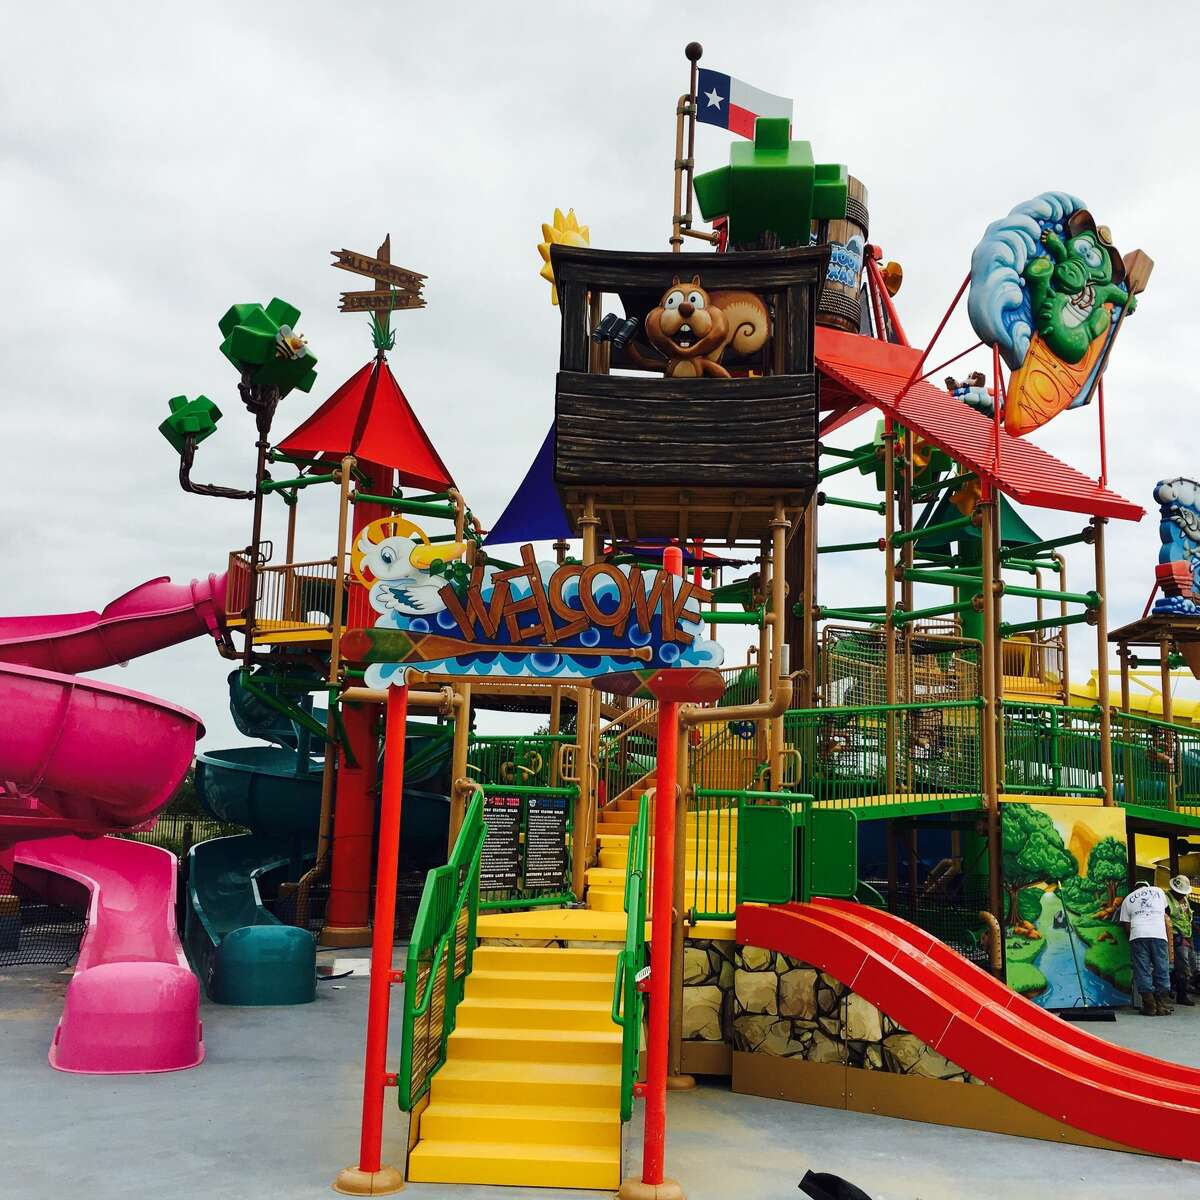 Ride/slide: Gully Washer Location: Katy, Texas Park: Typhoon Texas Waterpark Person: Female, age 9 Incident: Guest slipped and fell in the slide and hurt her finger Injury: Swollen ring finger